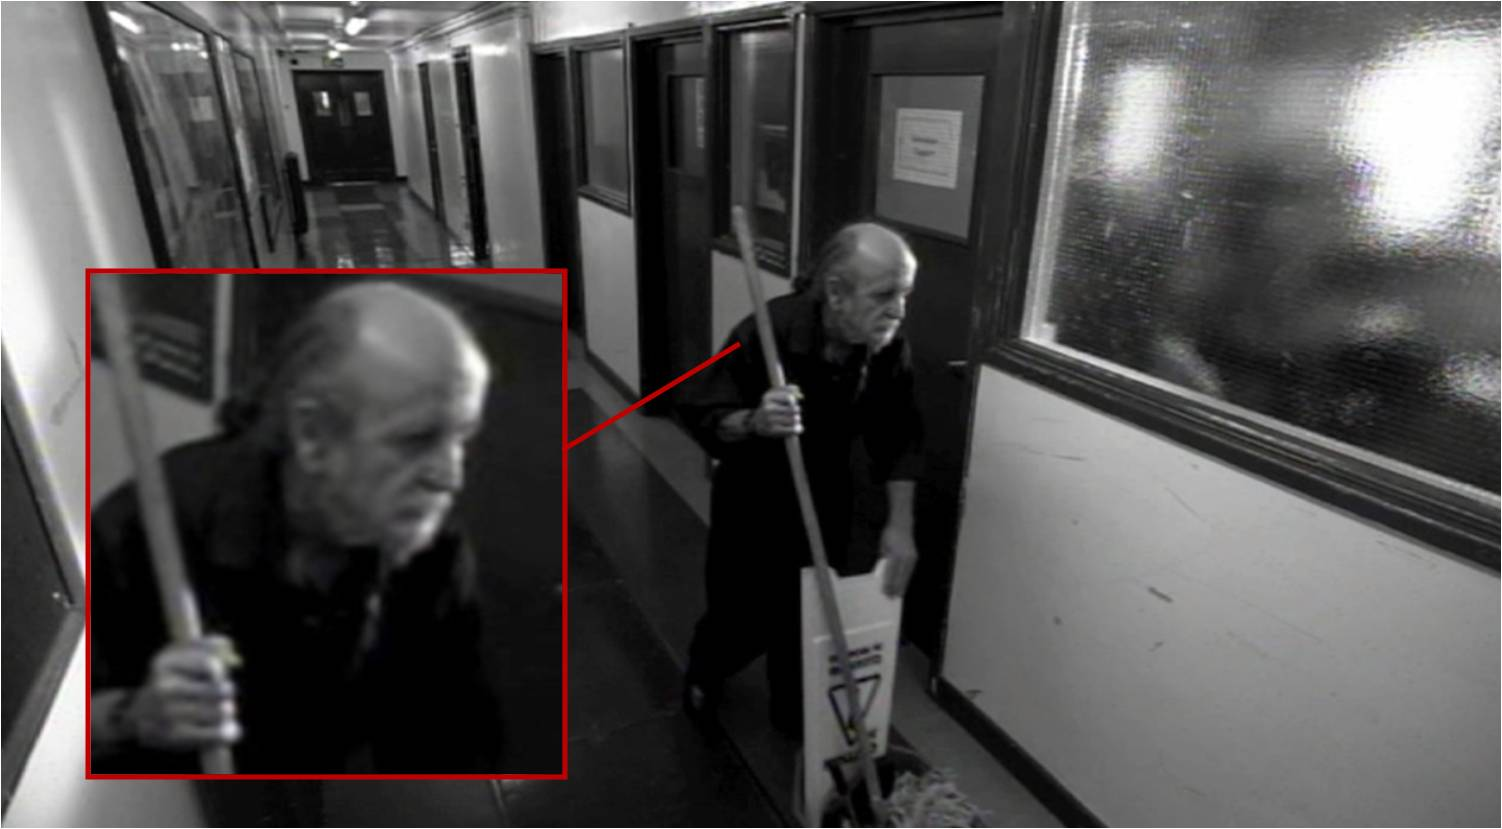 The Janitor on CCTV